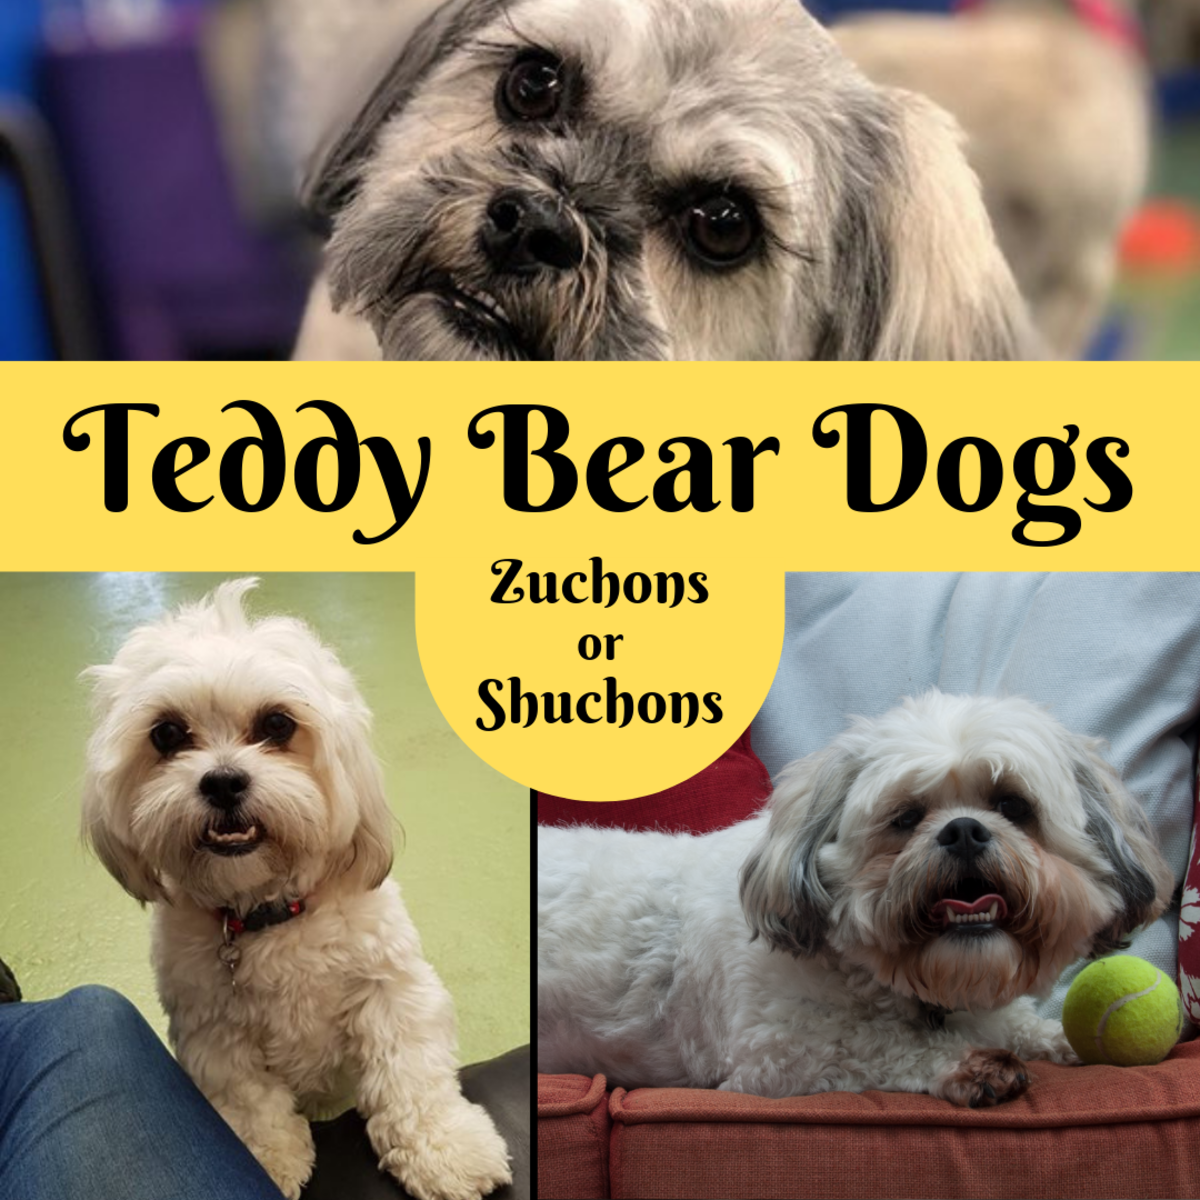 Learn about the Teddy Bear (Zuchon) dog breed, which is a mix of the Shih Tzu and the Bichon Frise.